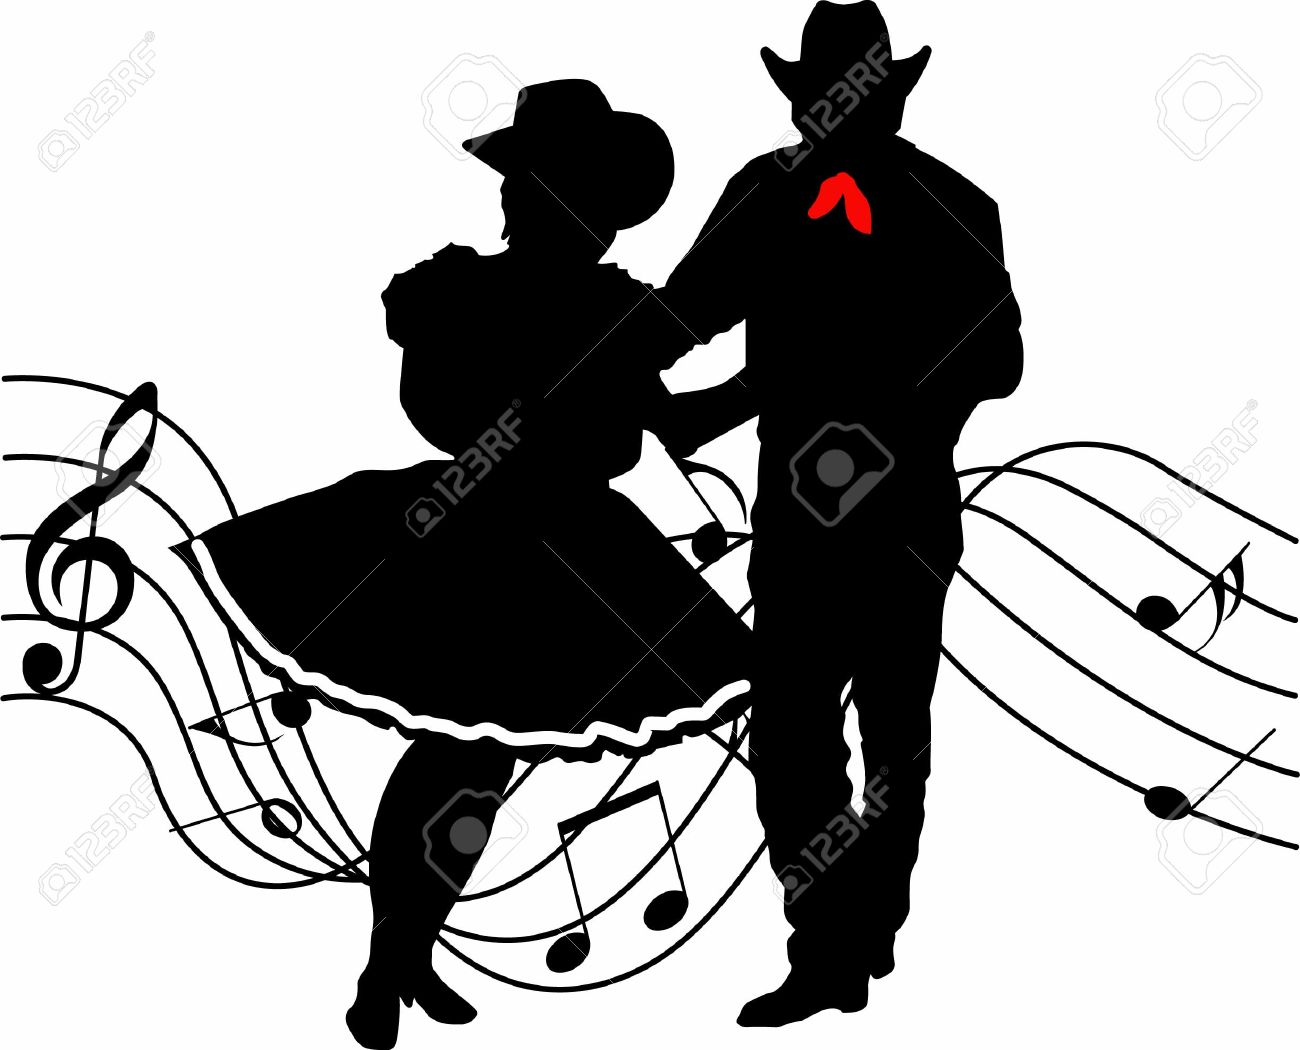 Western nite clipart png black and white download Square Dancer Clipart | Free download best Square Dancer ... png black and white download